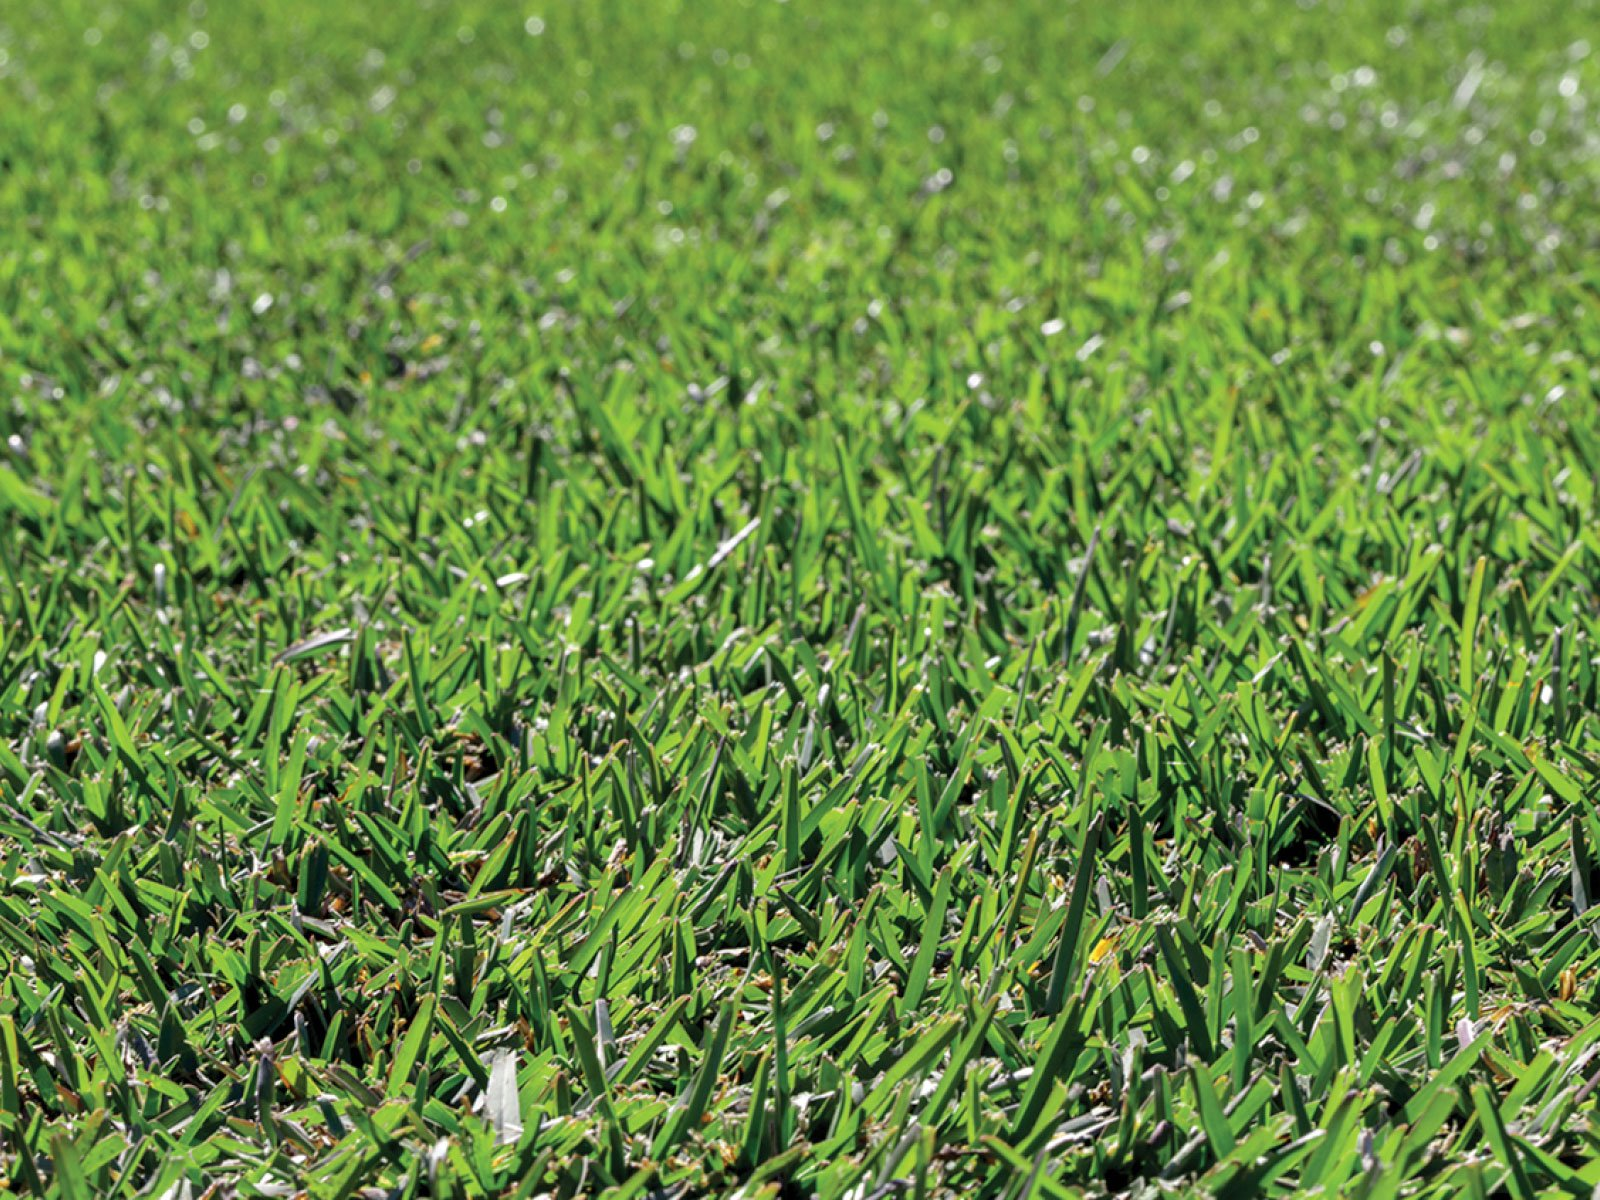 Managing new lawn with Level 2 water restrictions